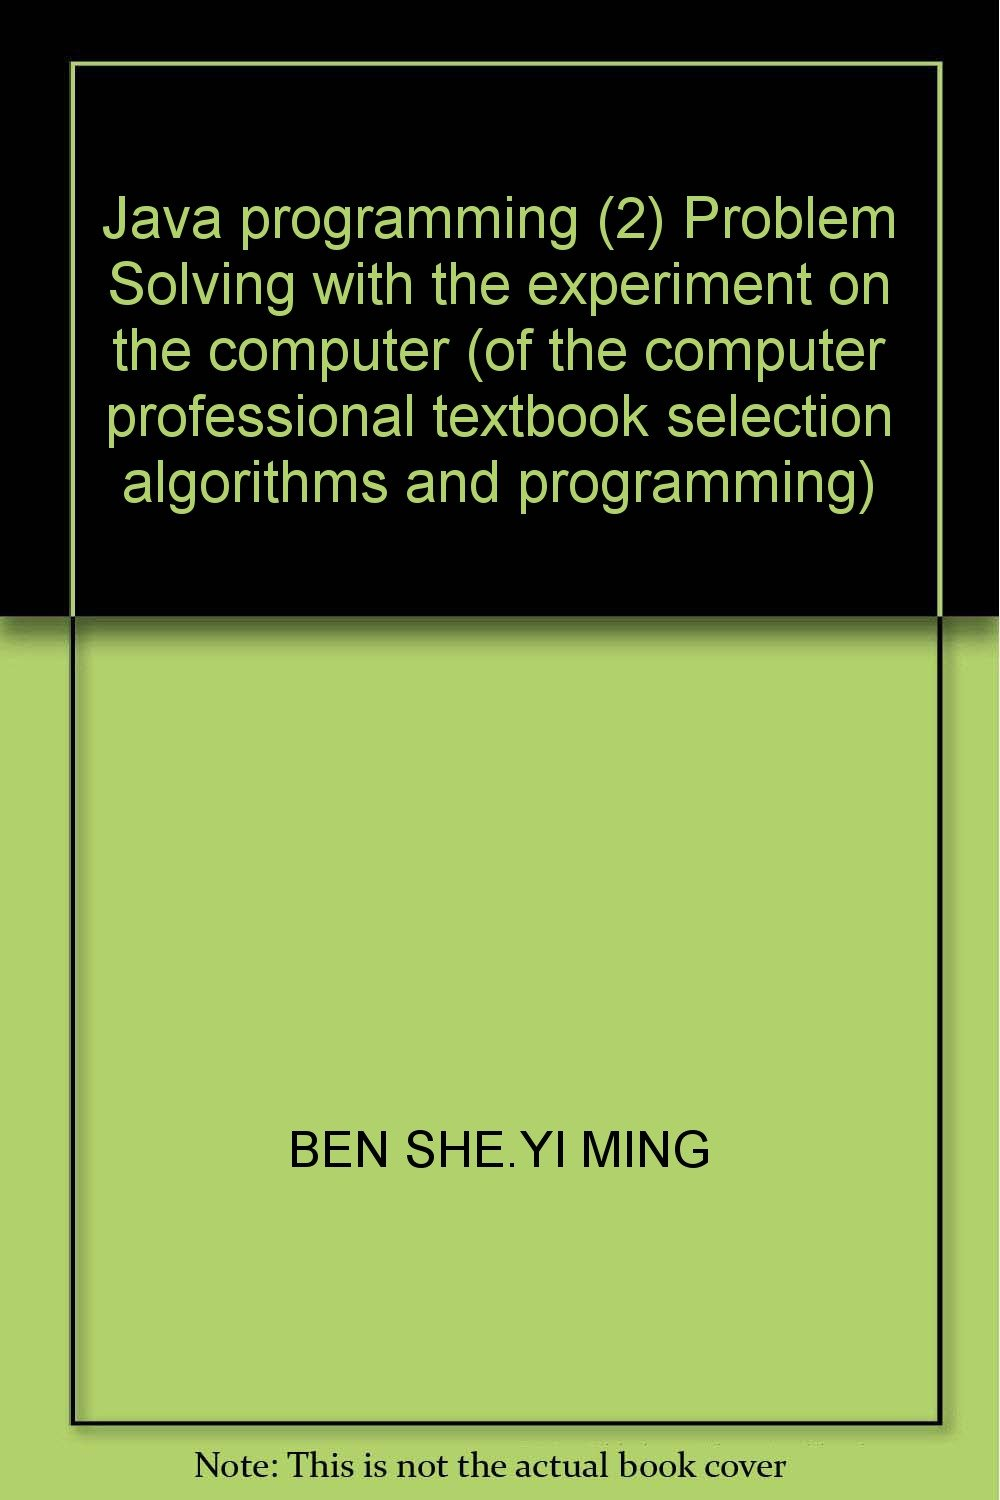 Download Java programming (2) Problem Solving with the experiment on the computer (of the computer professional textbook selection algorithms and programming) pdf epub